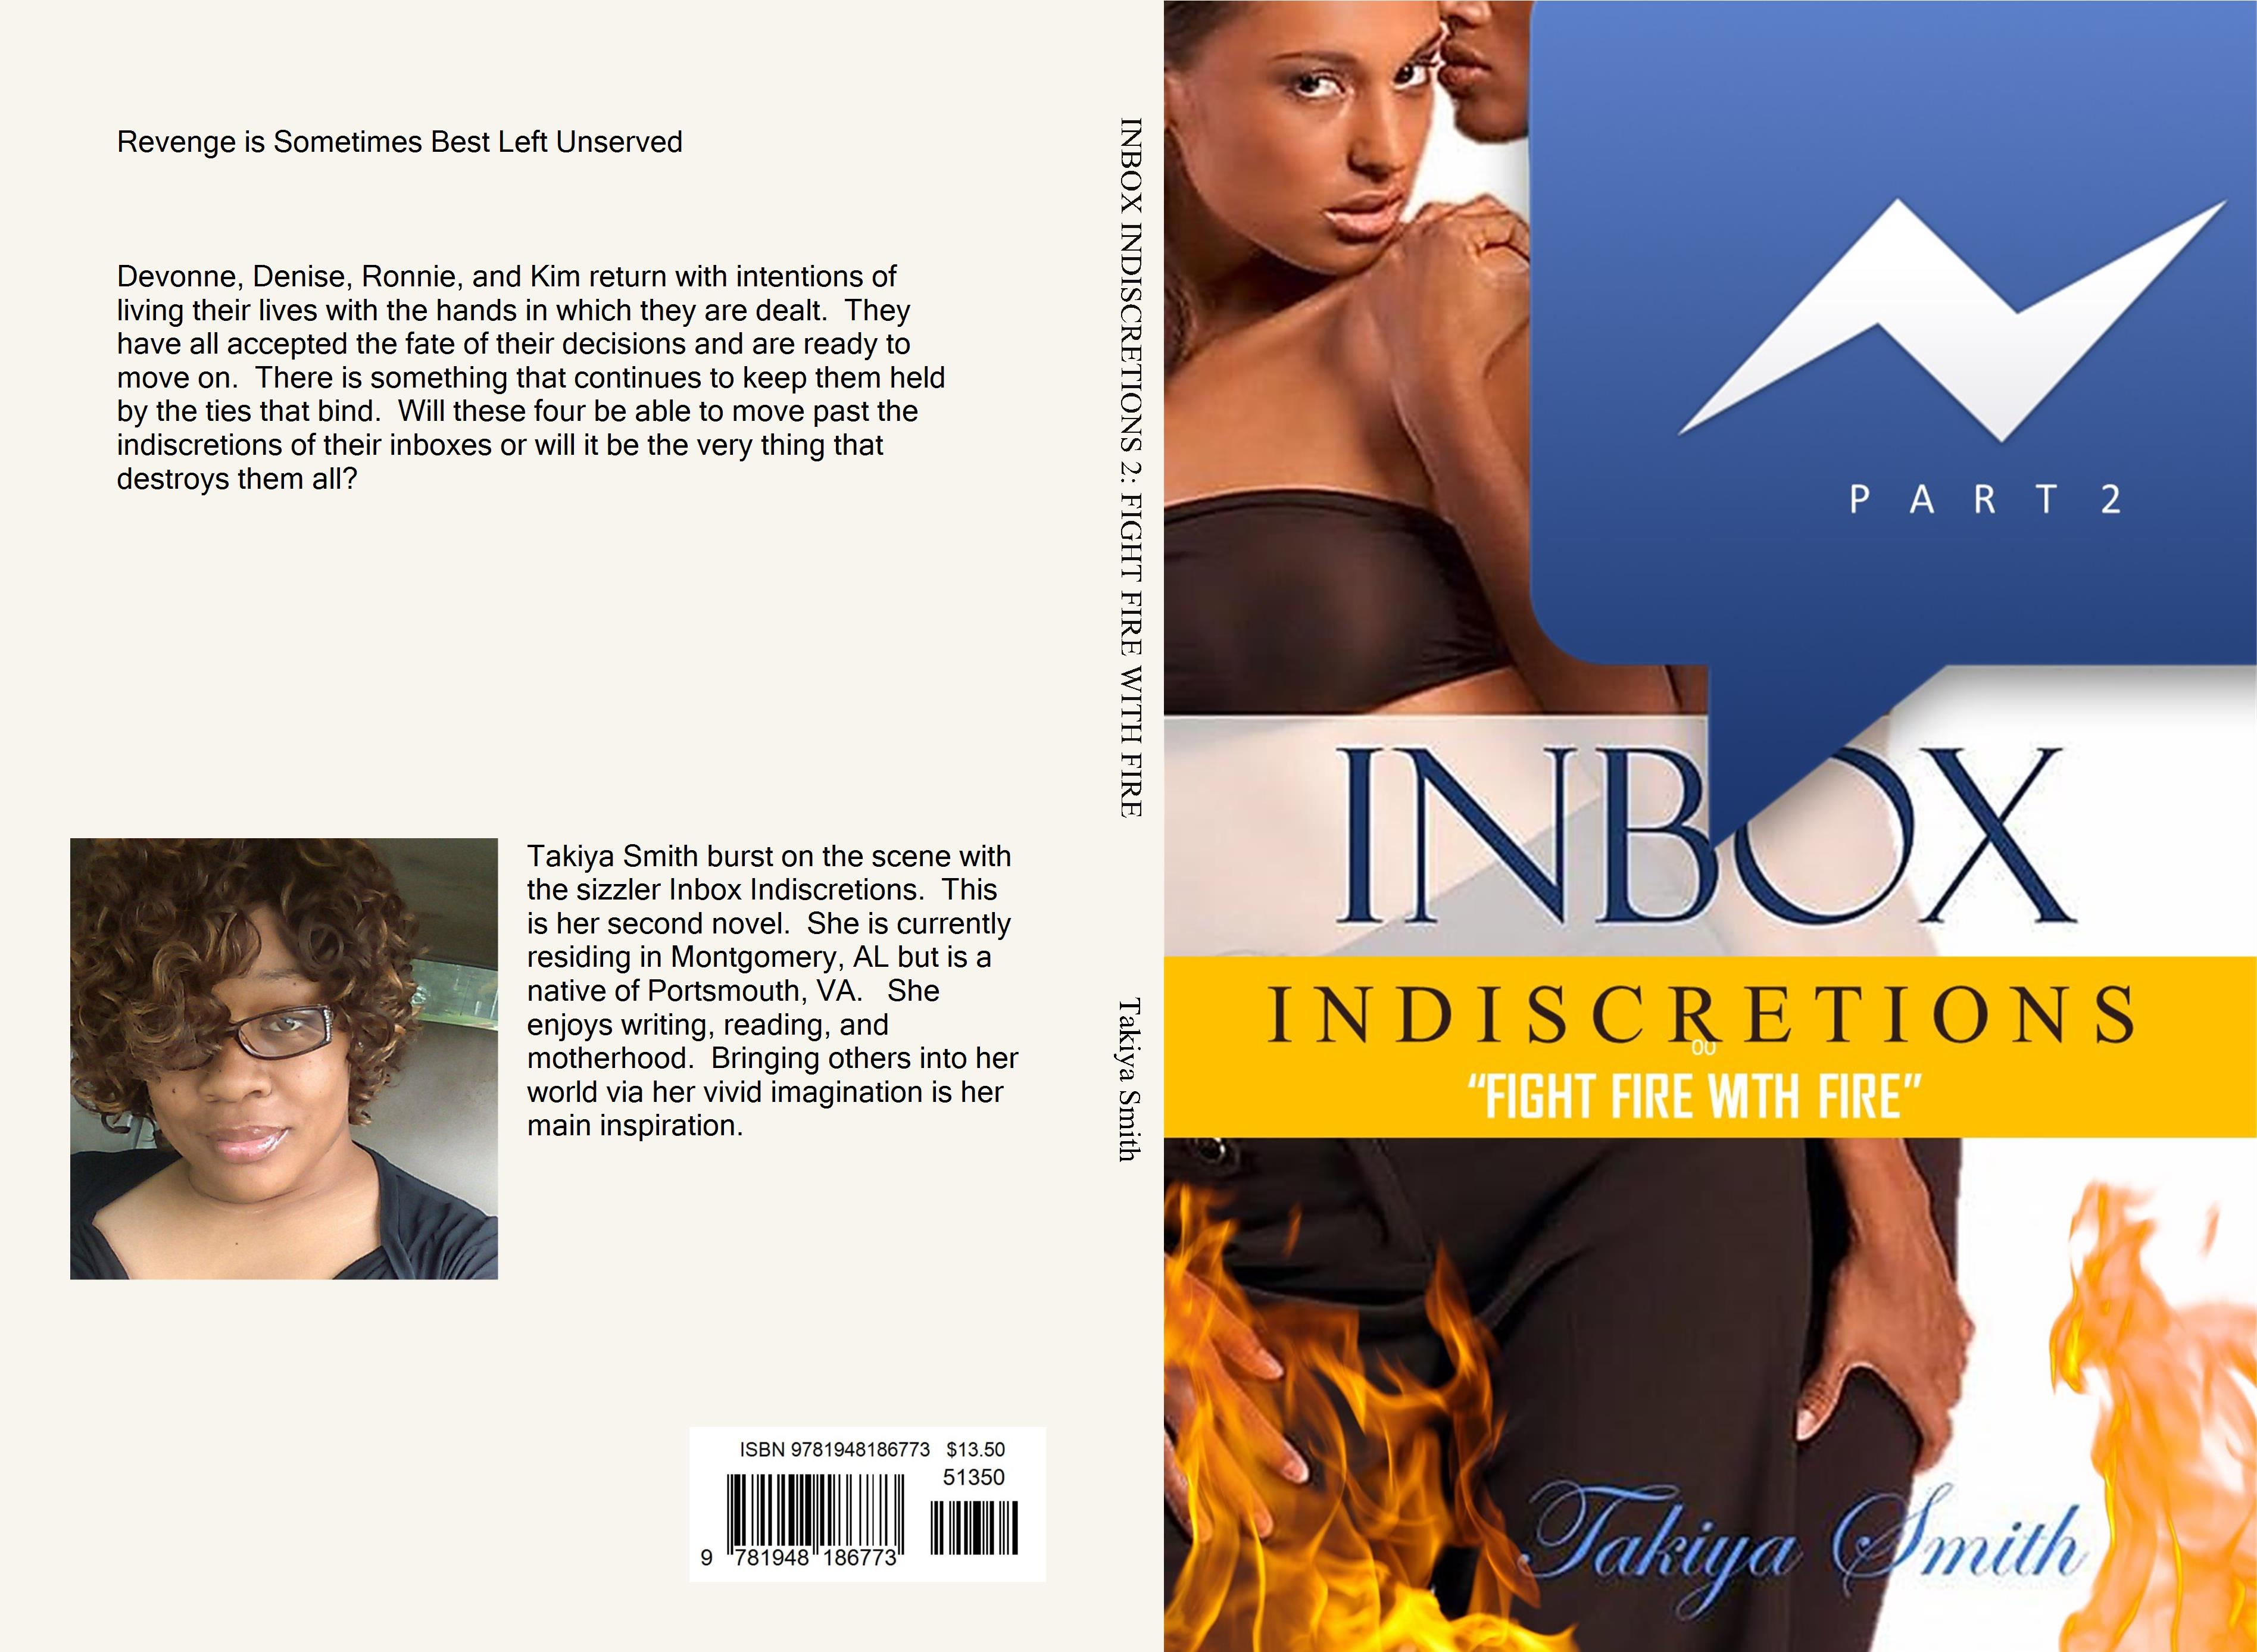 INBOX INDISCRETIONS 2: FIGHT FIRE WITH FIRE cover image